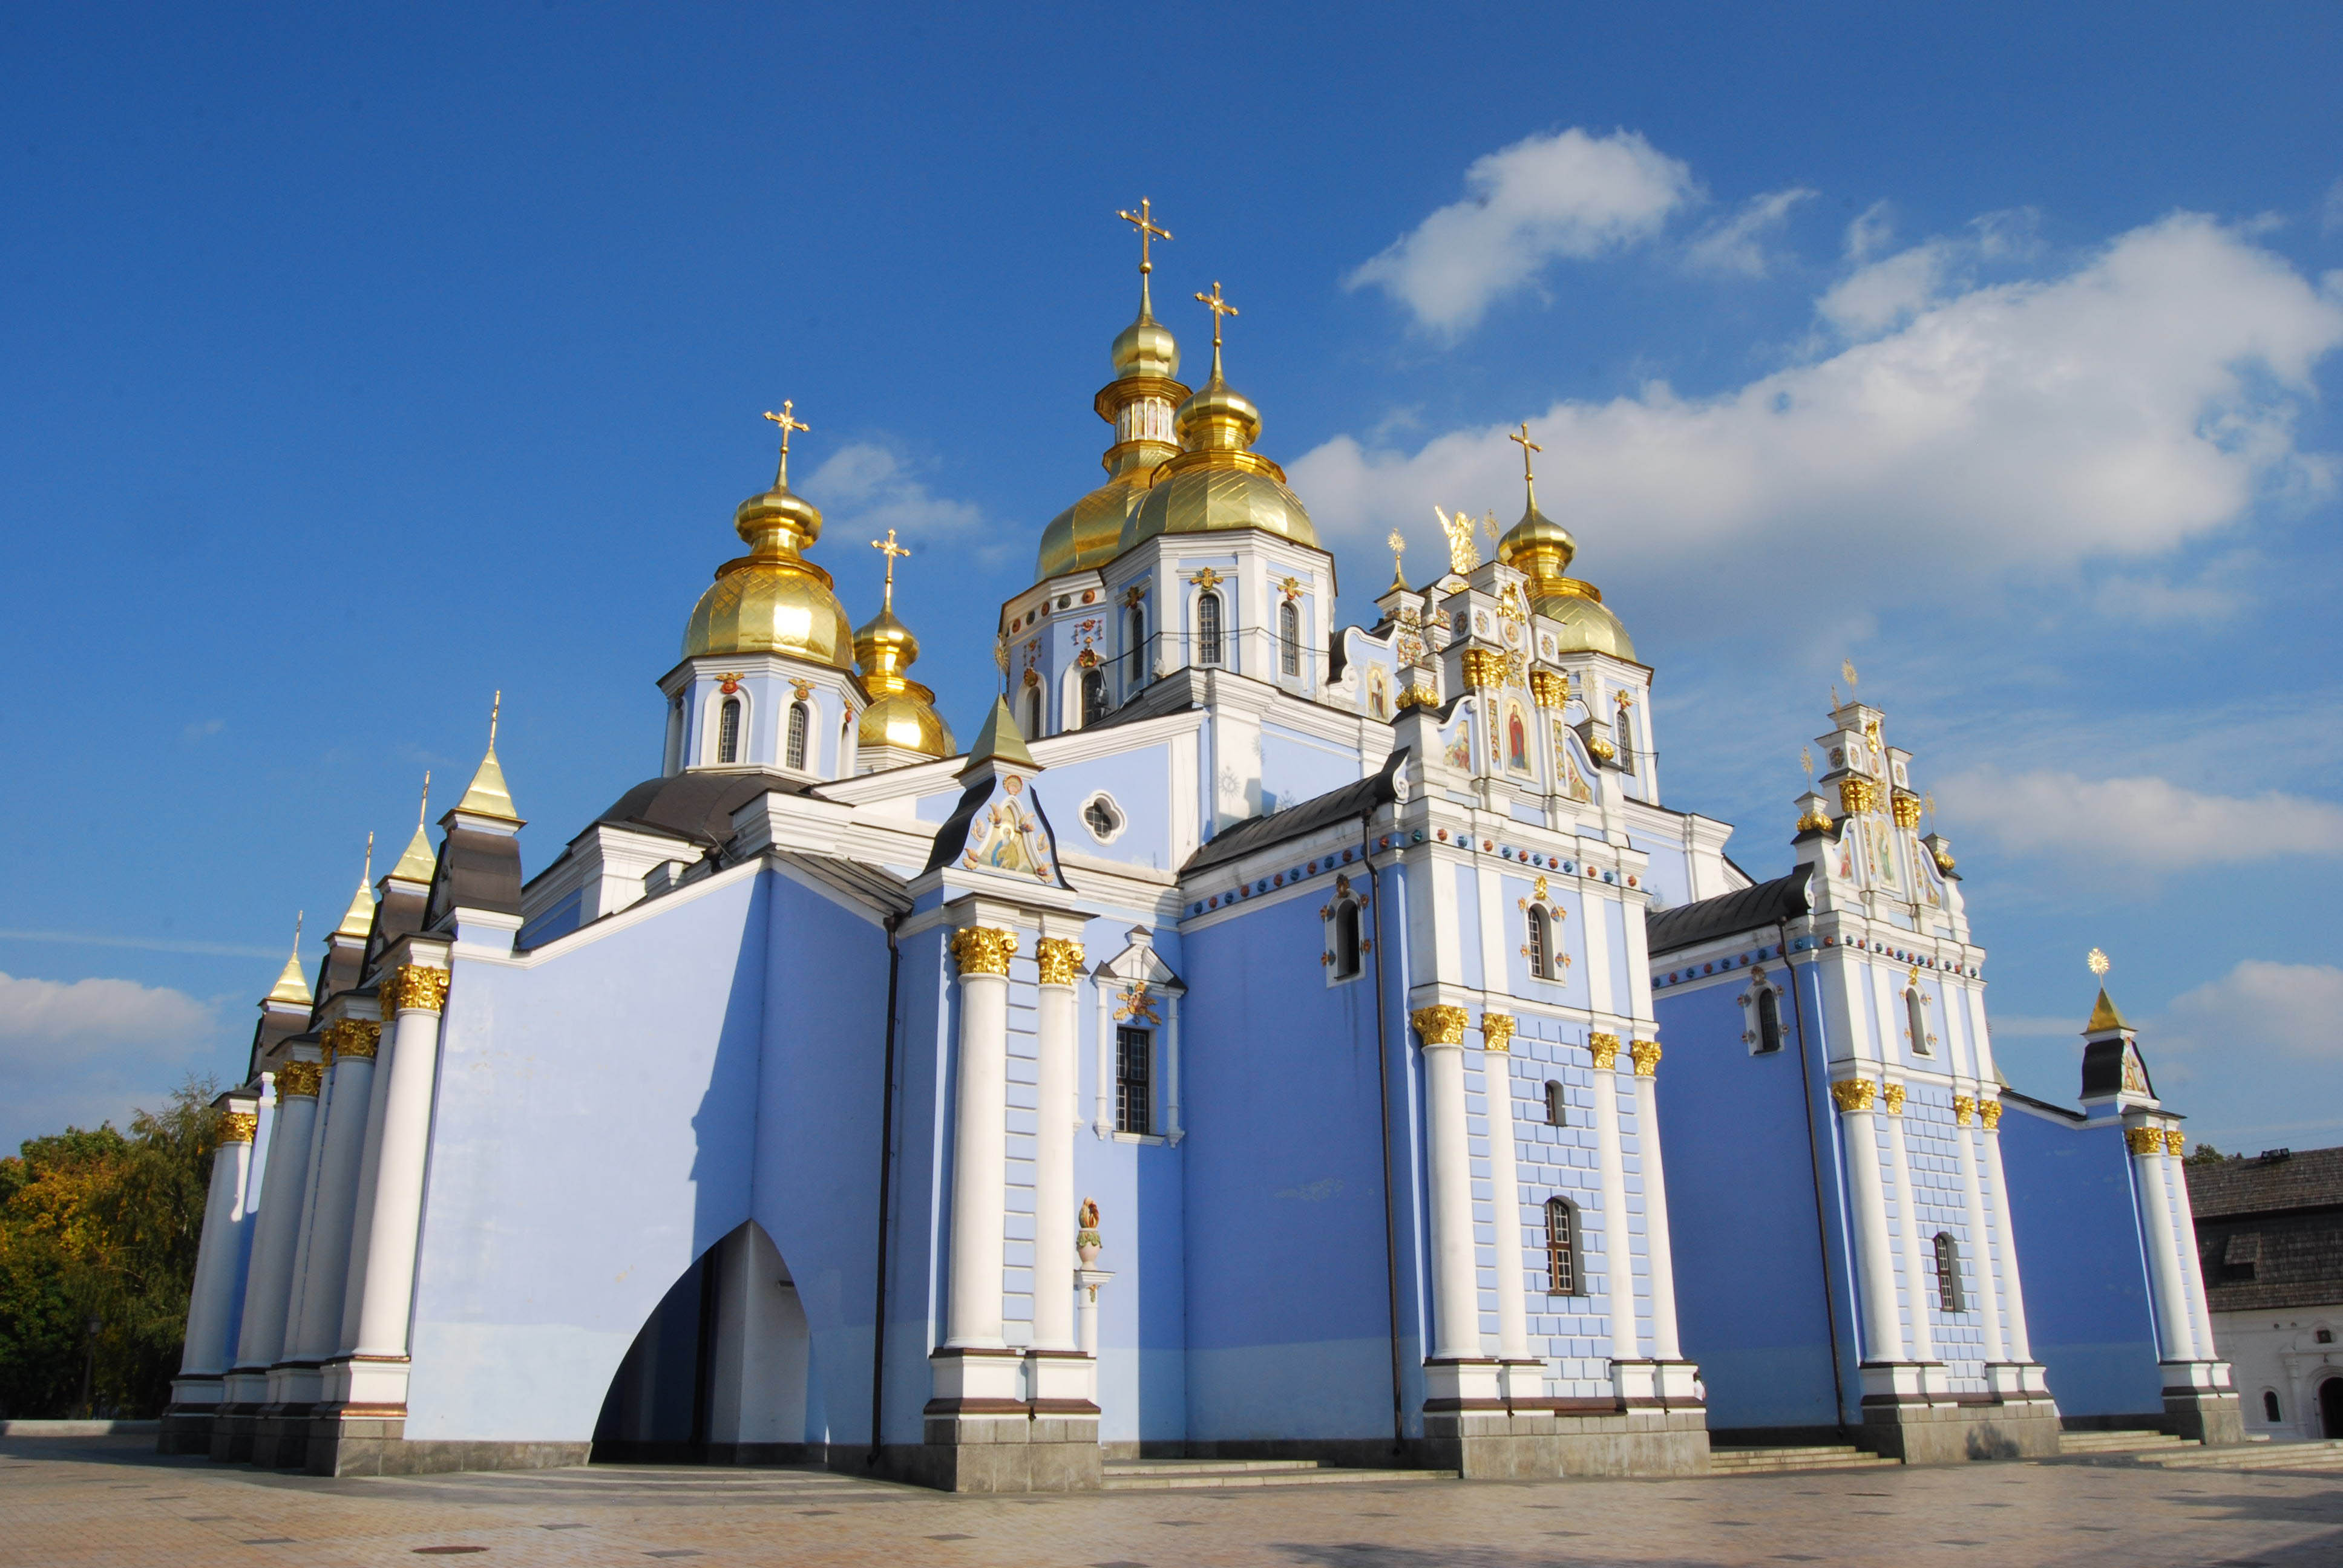 St._Michael's_Golden-Domed_Monastery,_2009.jpg